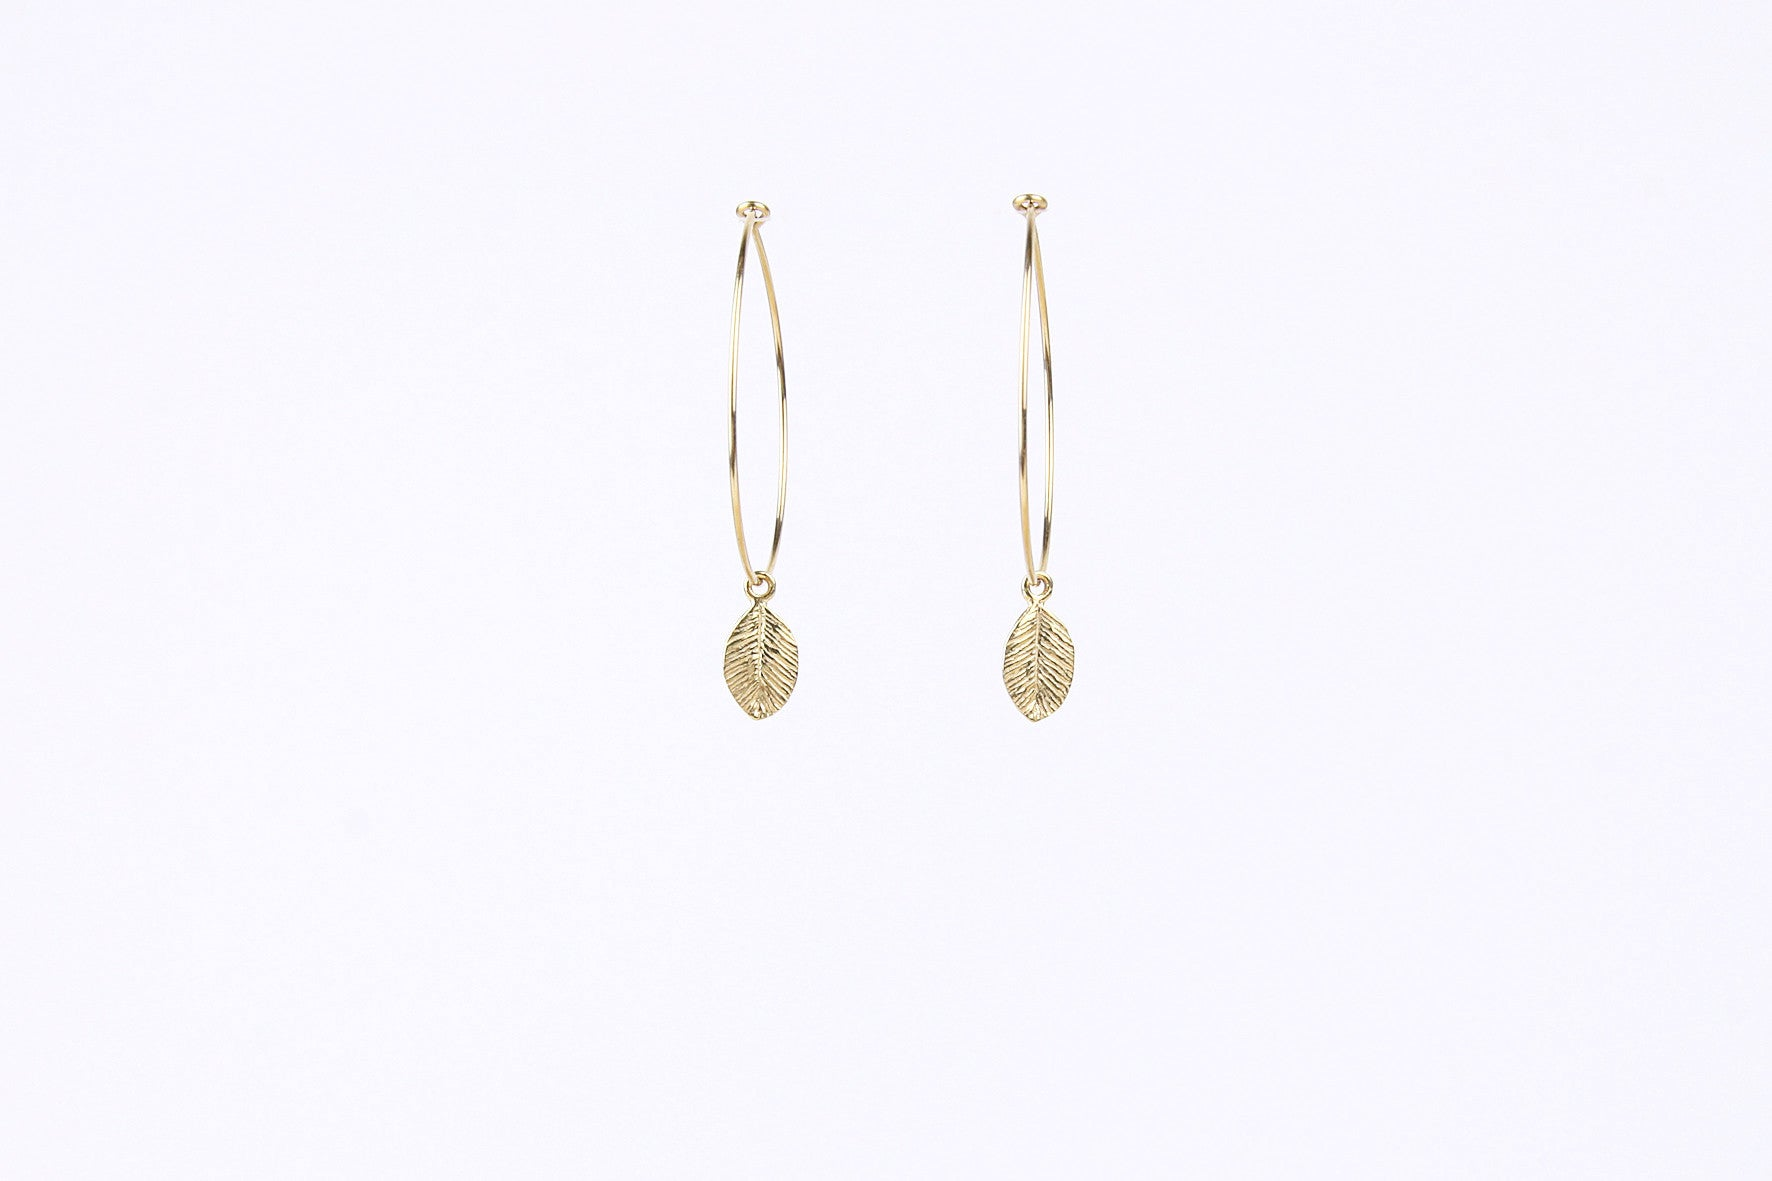 jewelberry ohrringe earrings tiny leaf hoops gold plated sterling silver fine jewelry handmade with love fairtrade